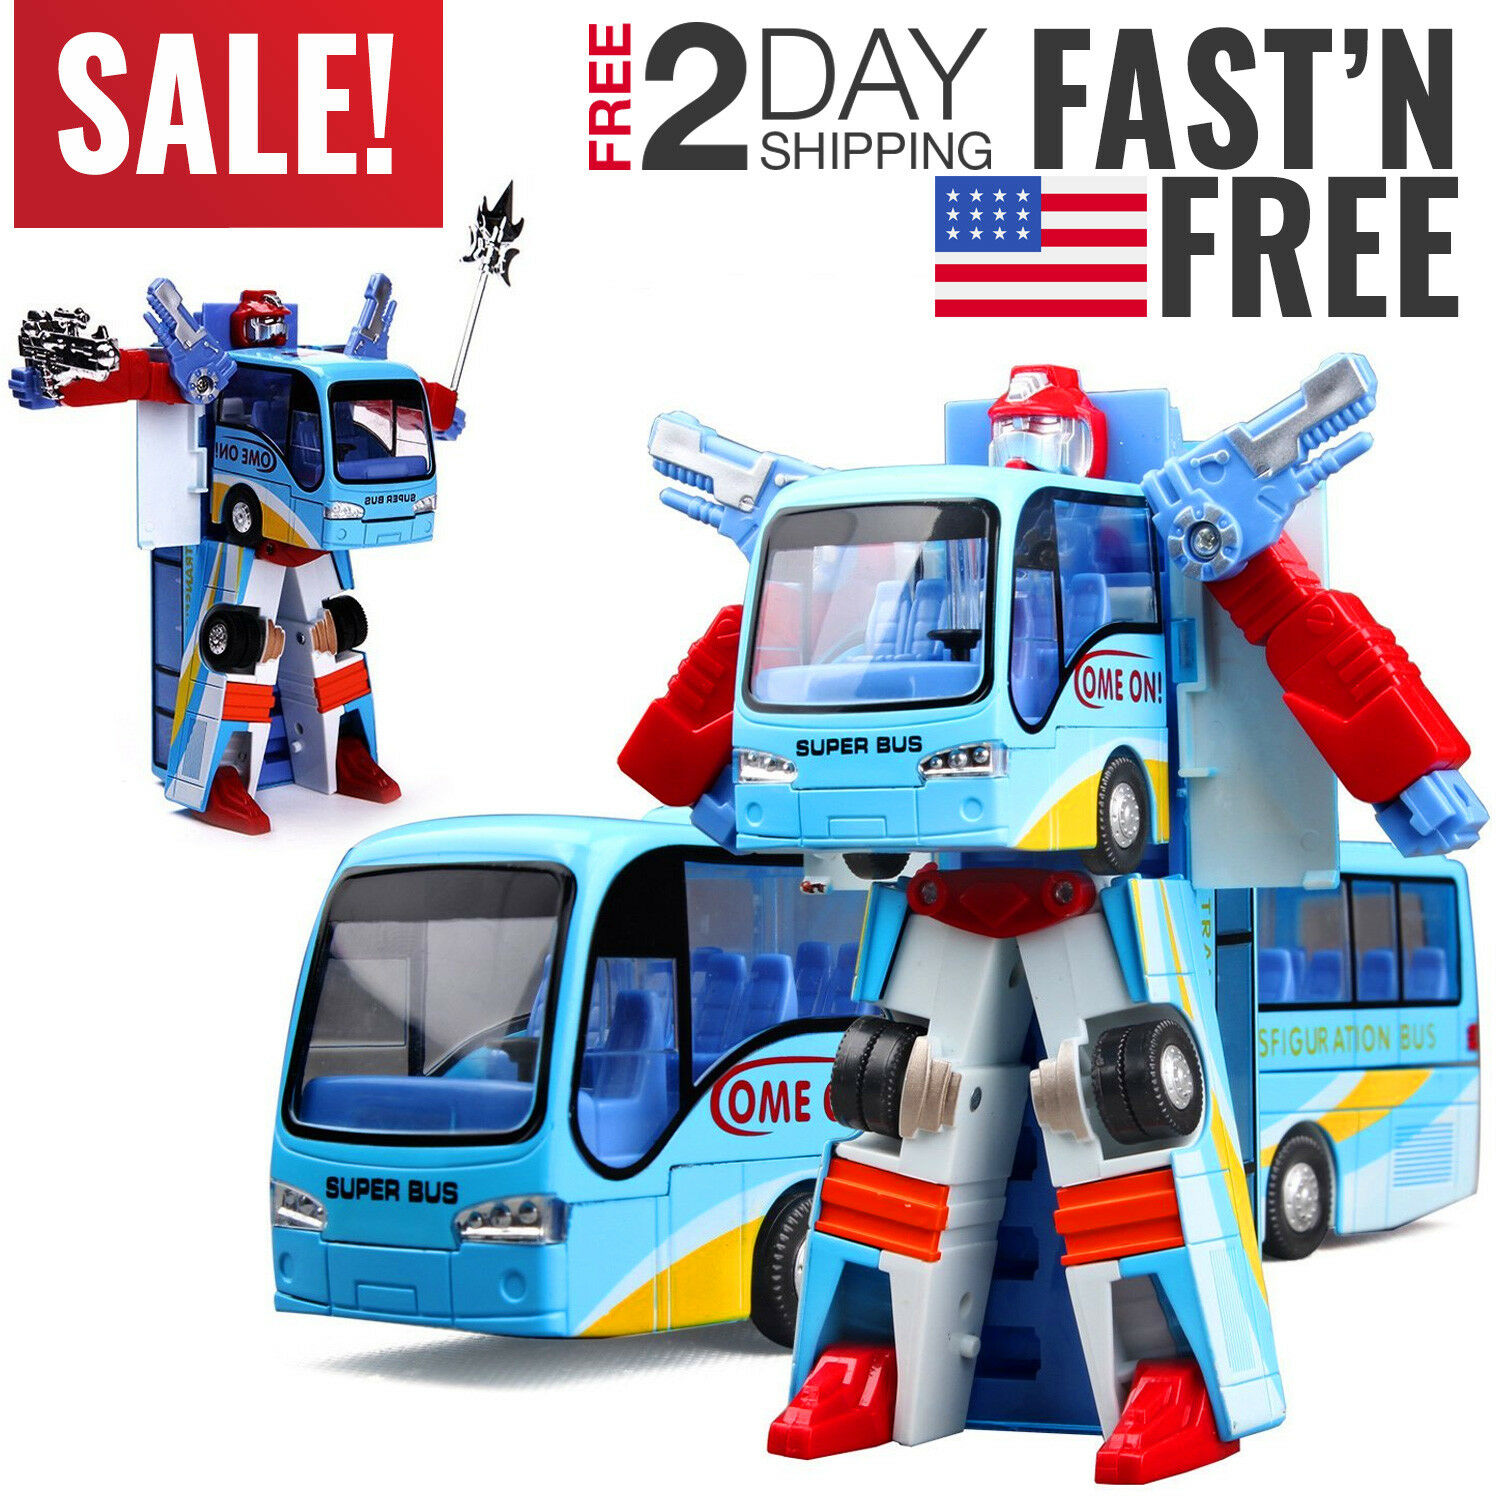 Cool Toys For Boys Age 4 : Toys for boys robot bus kids toddler